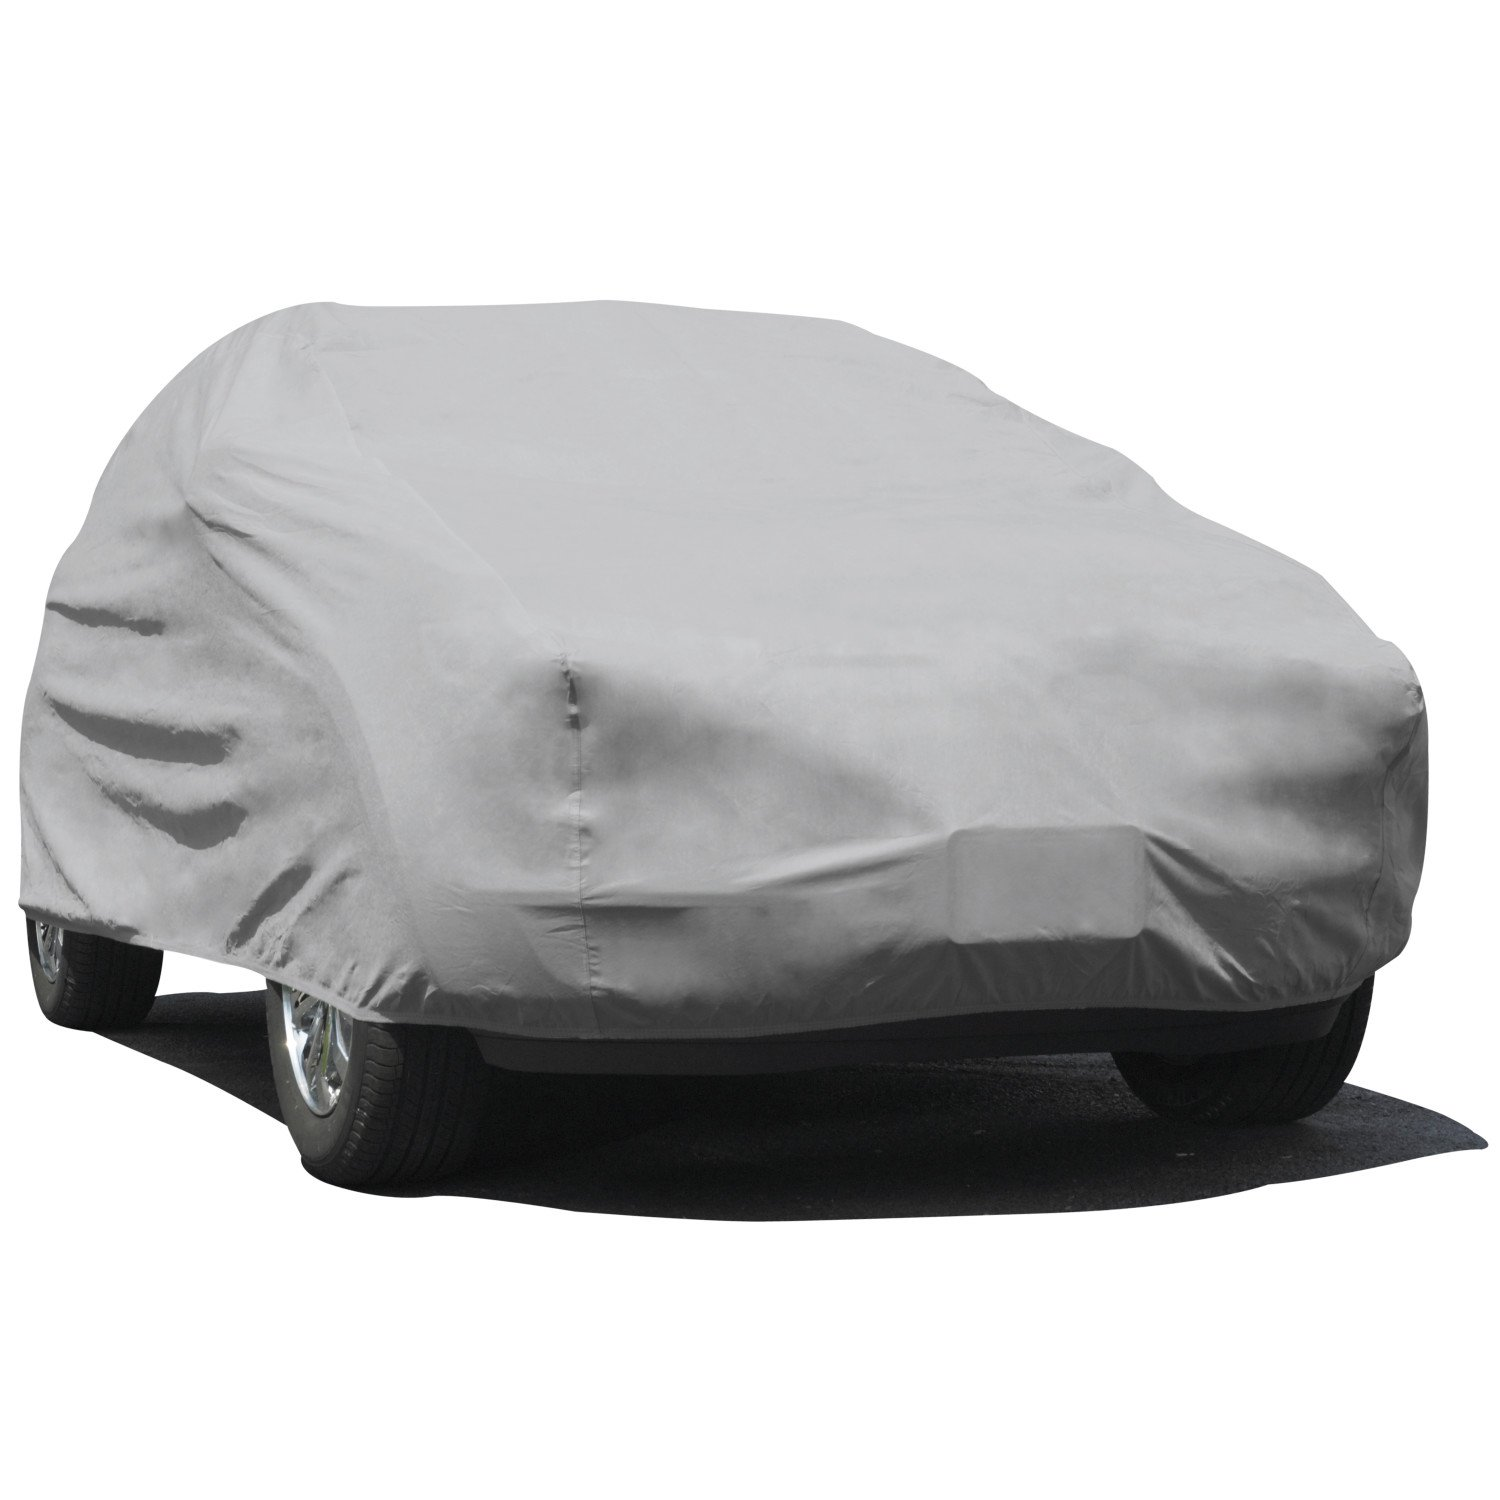 Budge Rain Barrier SUV Cover Fits Large SUVs up to 229 inches, URB-3 - (Polypropylene with Waterproof Film, Gray)